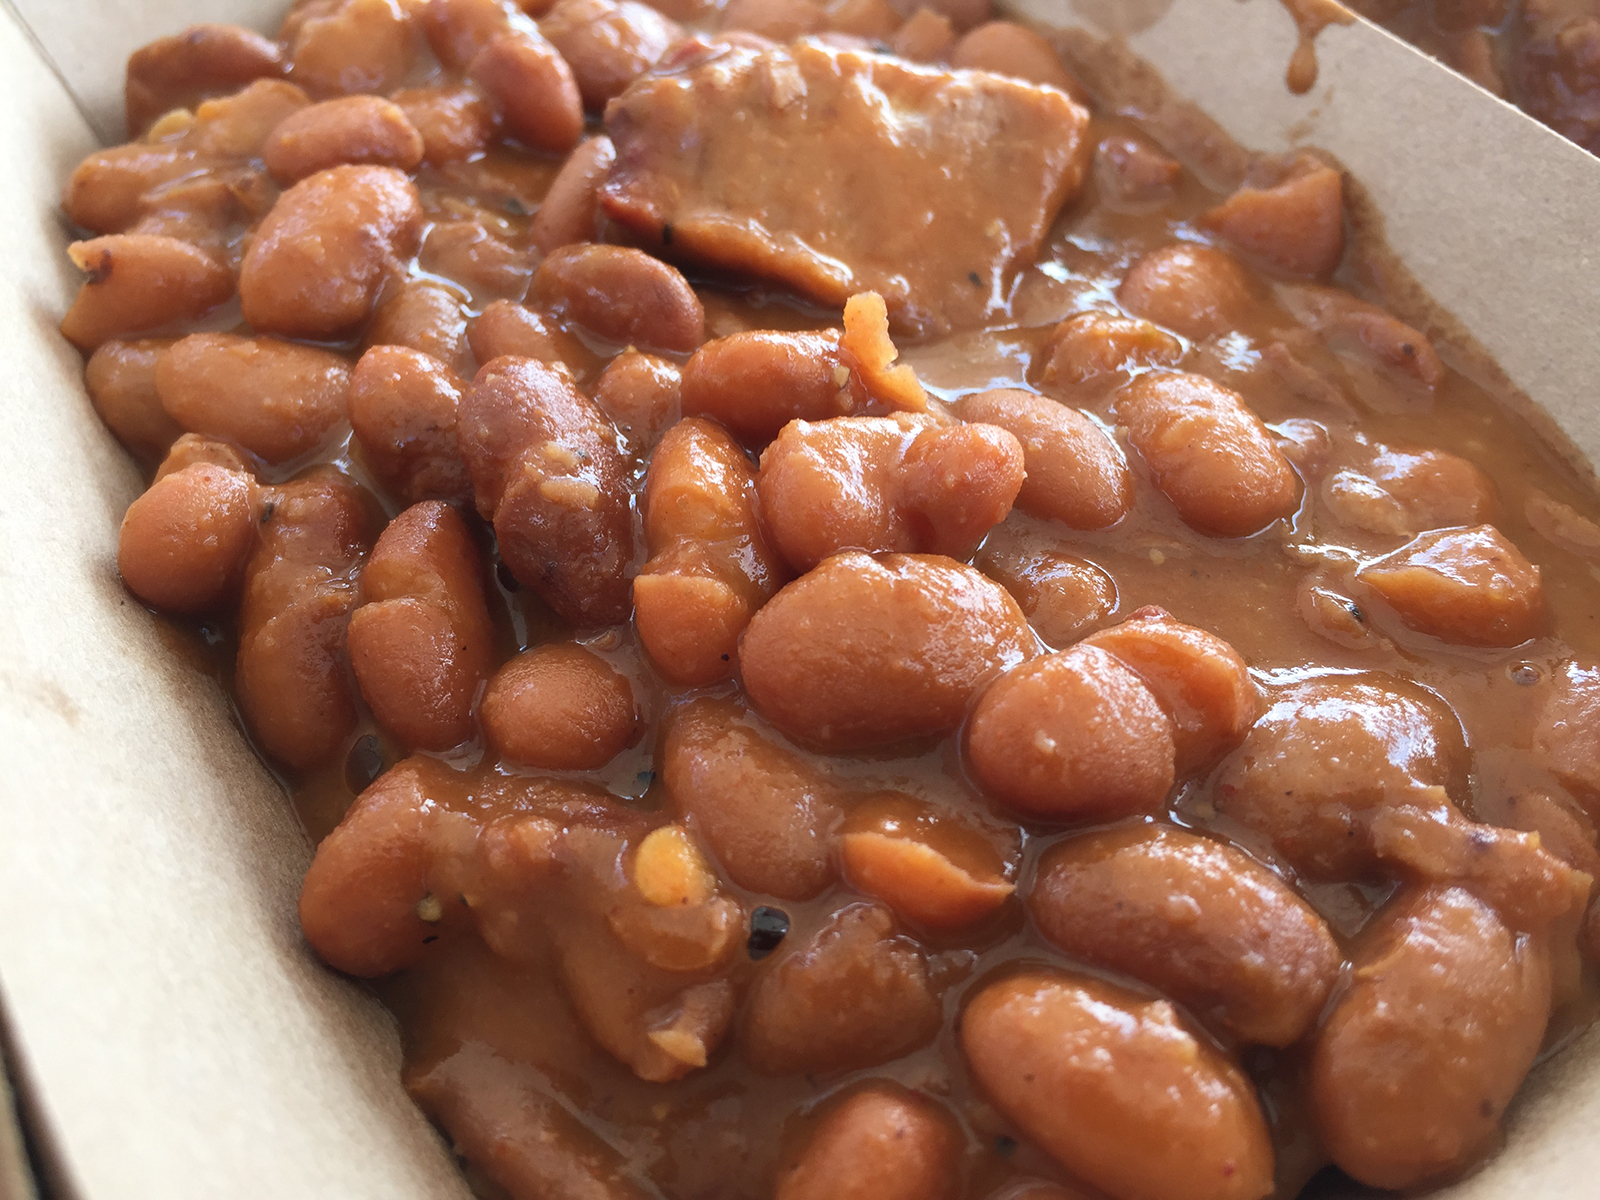 Baked beans from Guess Family Barbecue.